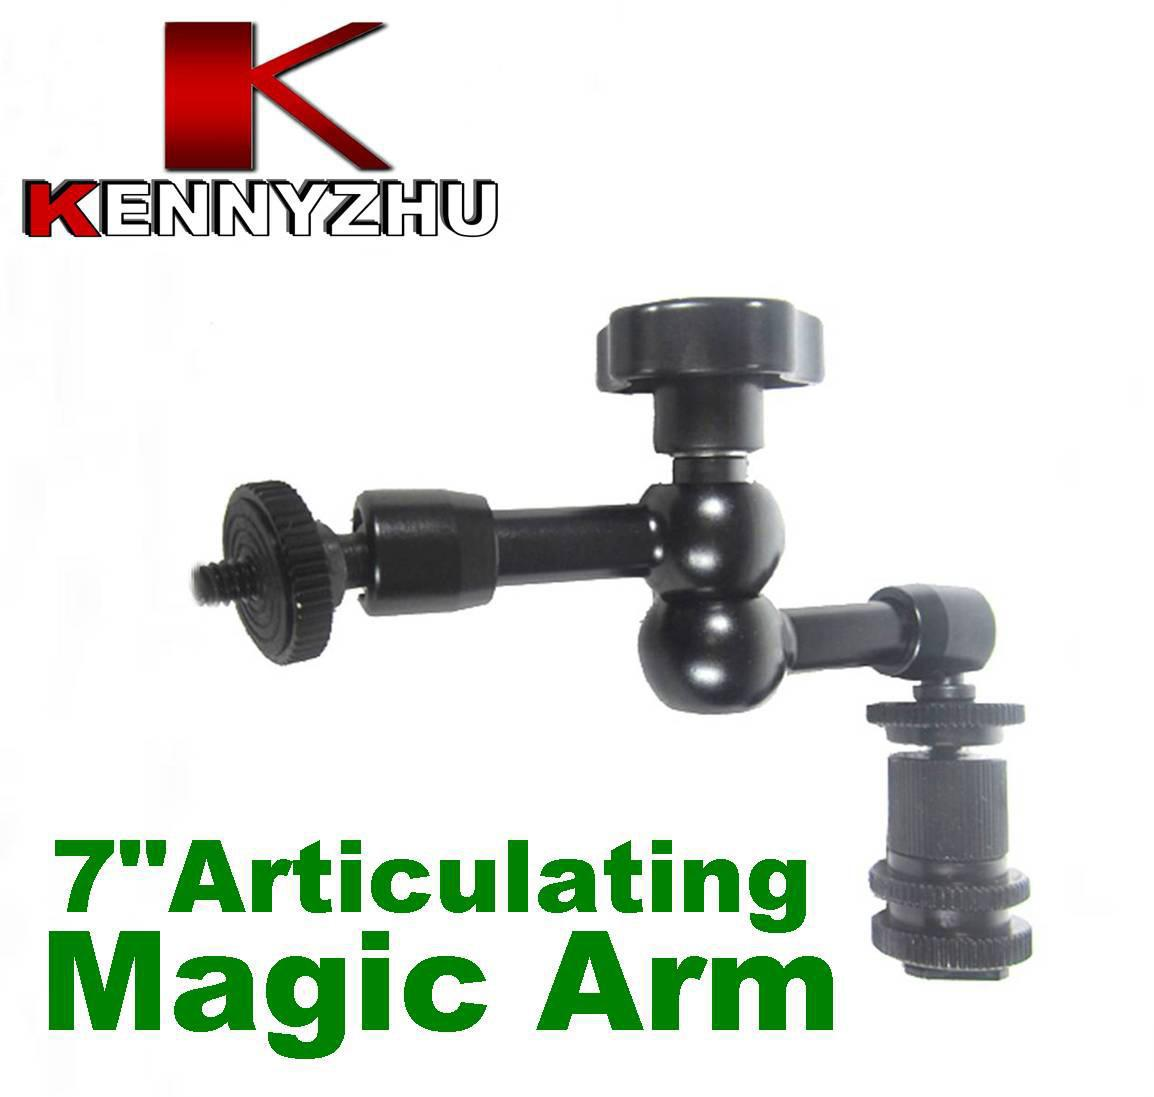 DSLR Rig Articulating Magic Arm 7 '' para DSLR Camera Led Light Lcd Monitor de campo Aluminium Matieral